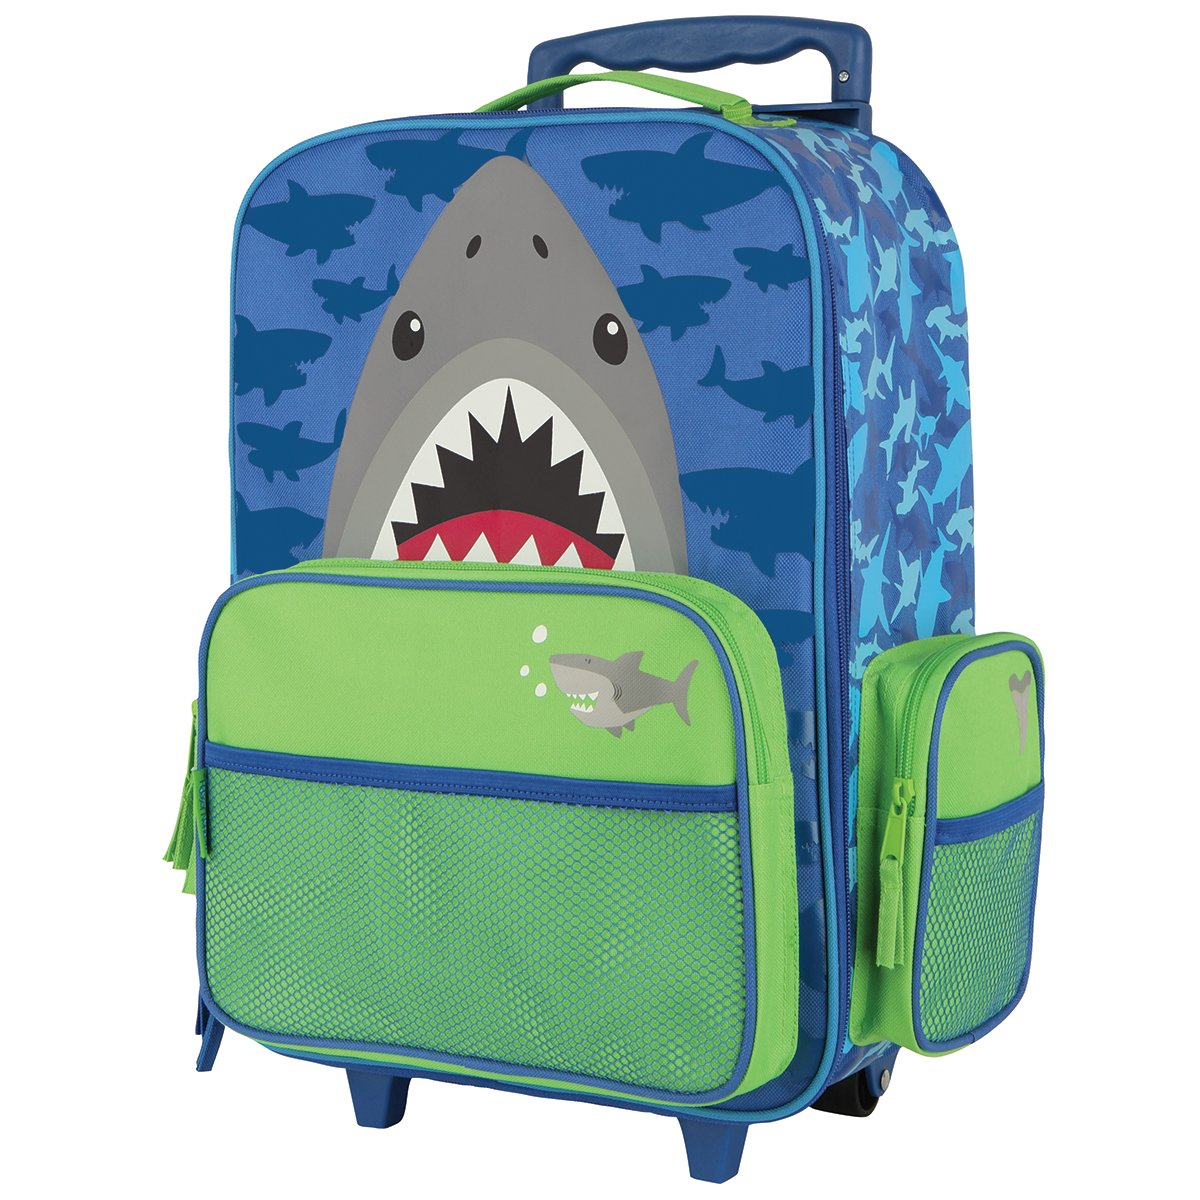 Stephen Joseph Boys' Shark, Royal Blue/Green/Gray by Stephen Joseph